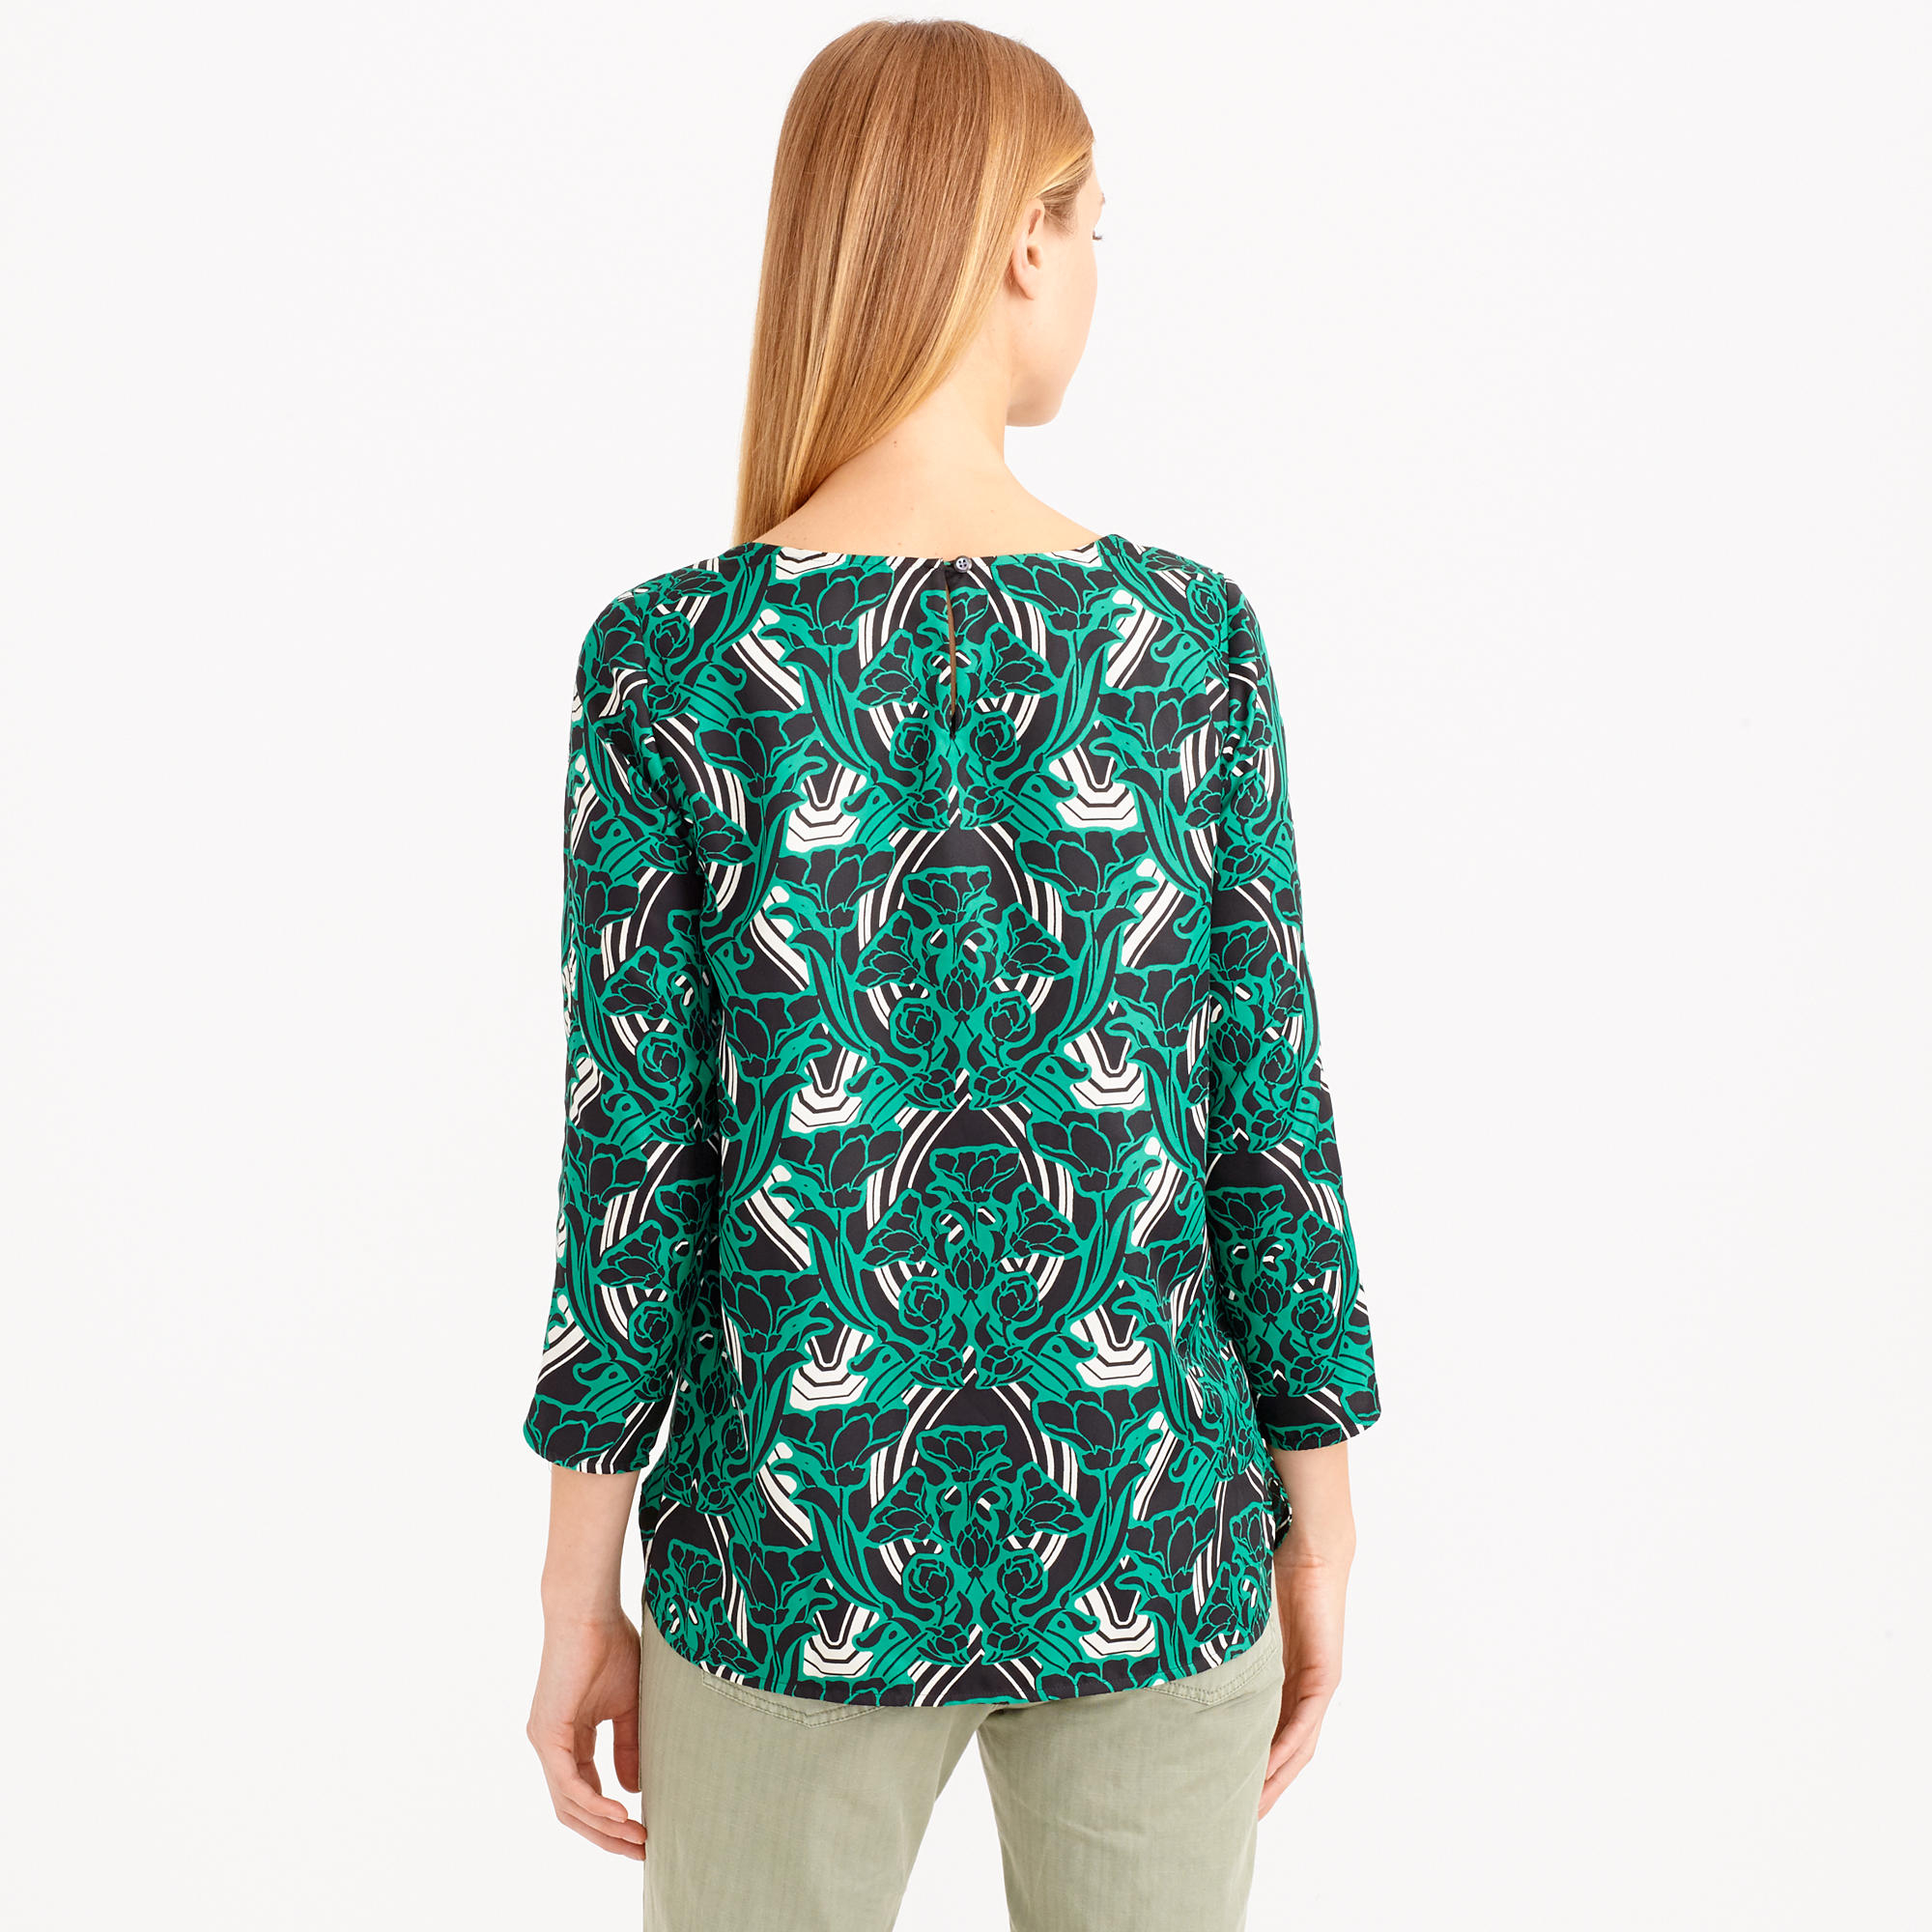 e2b4f4546be Lyst - J.Crew Retro Floral Popover Shirt in Green